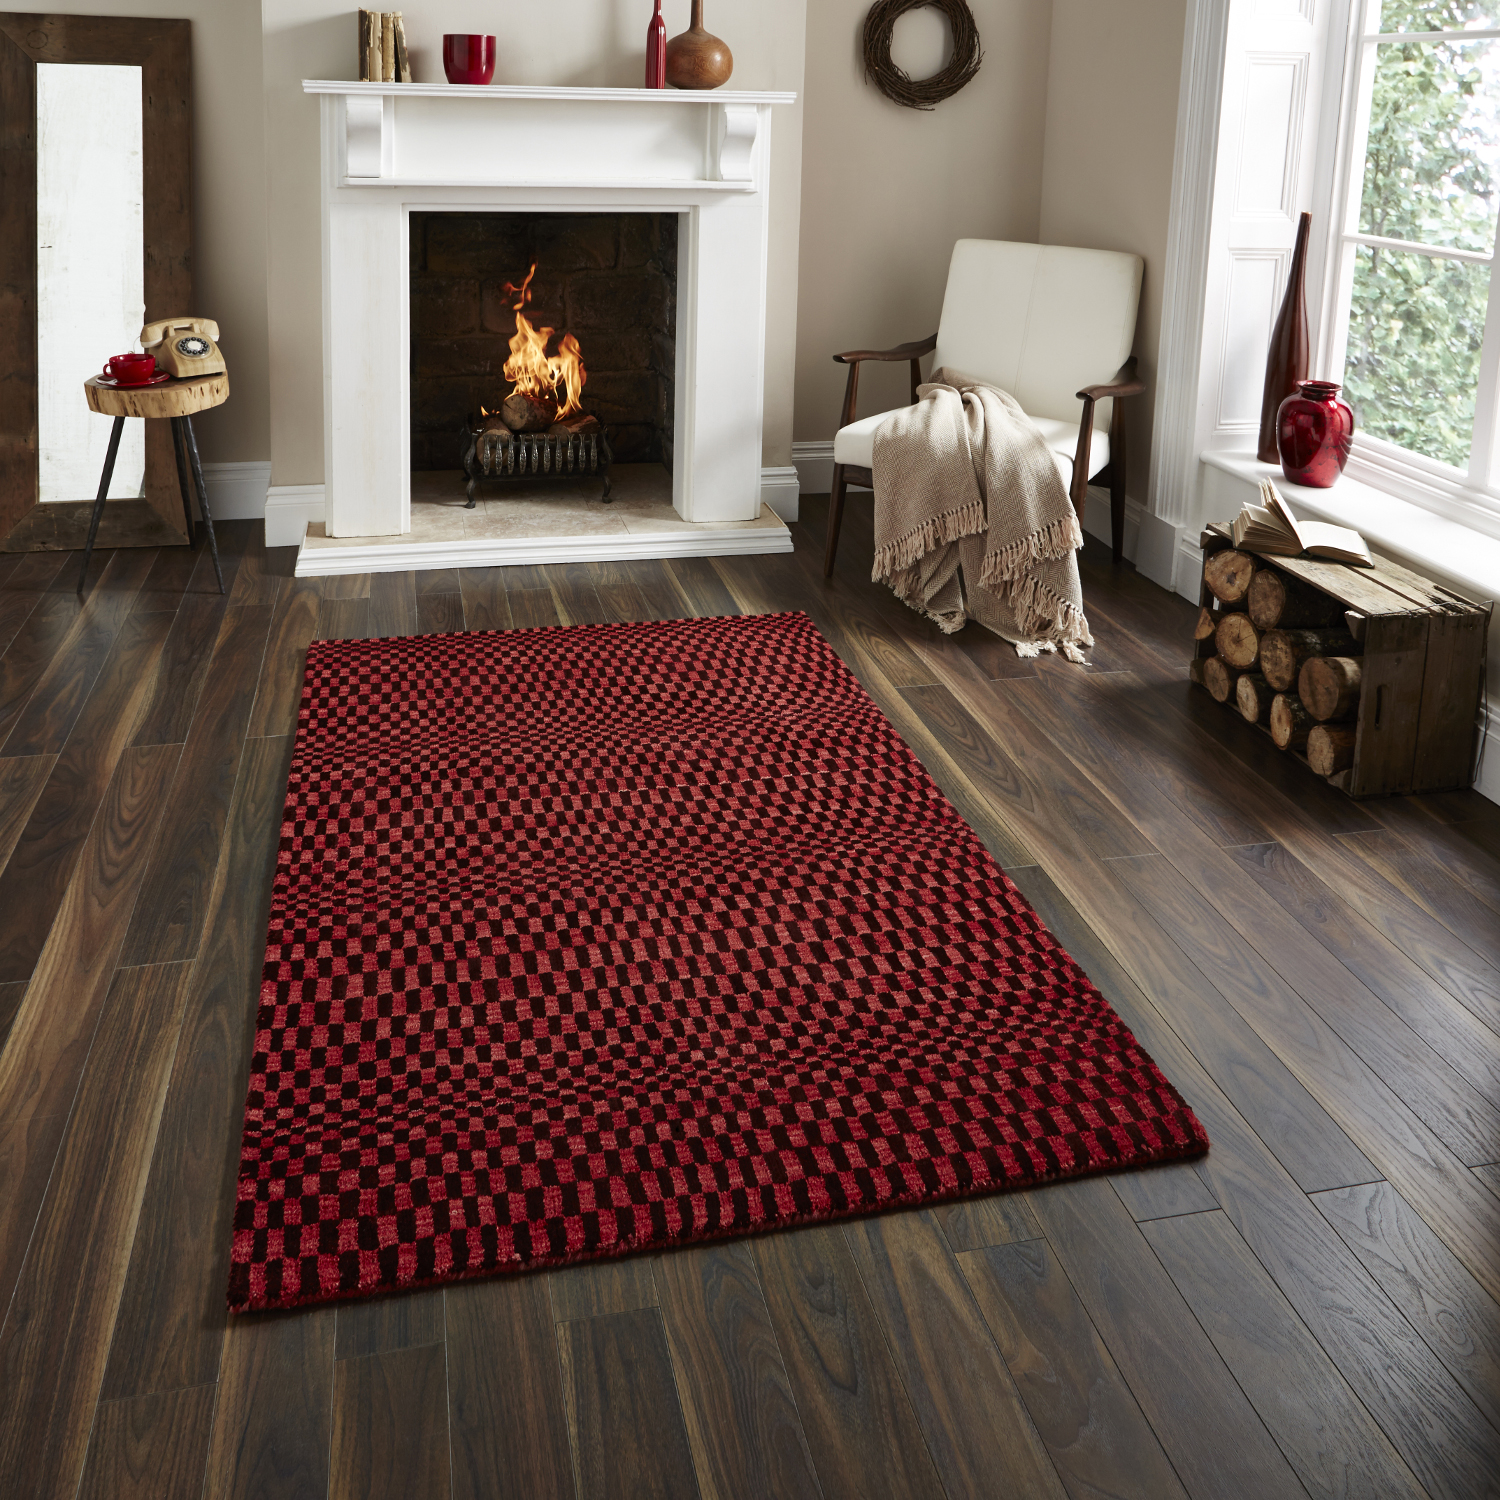 Large floor rugs sonic-wave-effect-optical-illusion-large-floor-mat- QCXWHOL